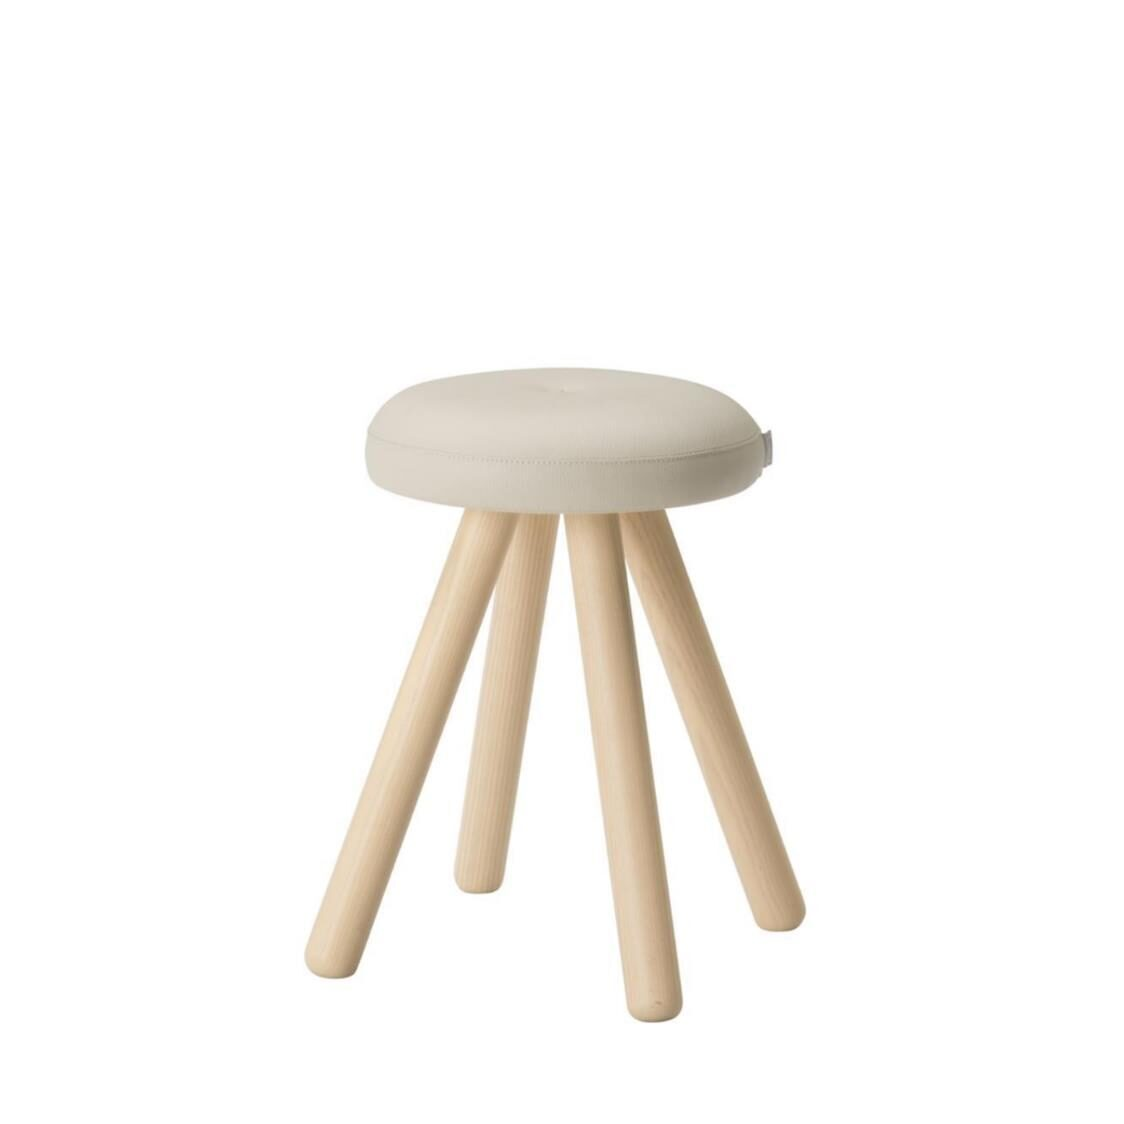 iloom Miel Gallery Wooden Round Stool CCLBG